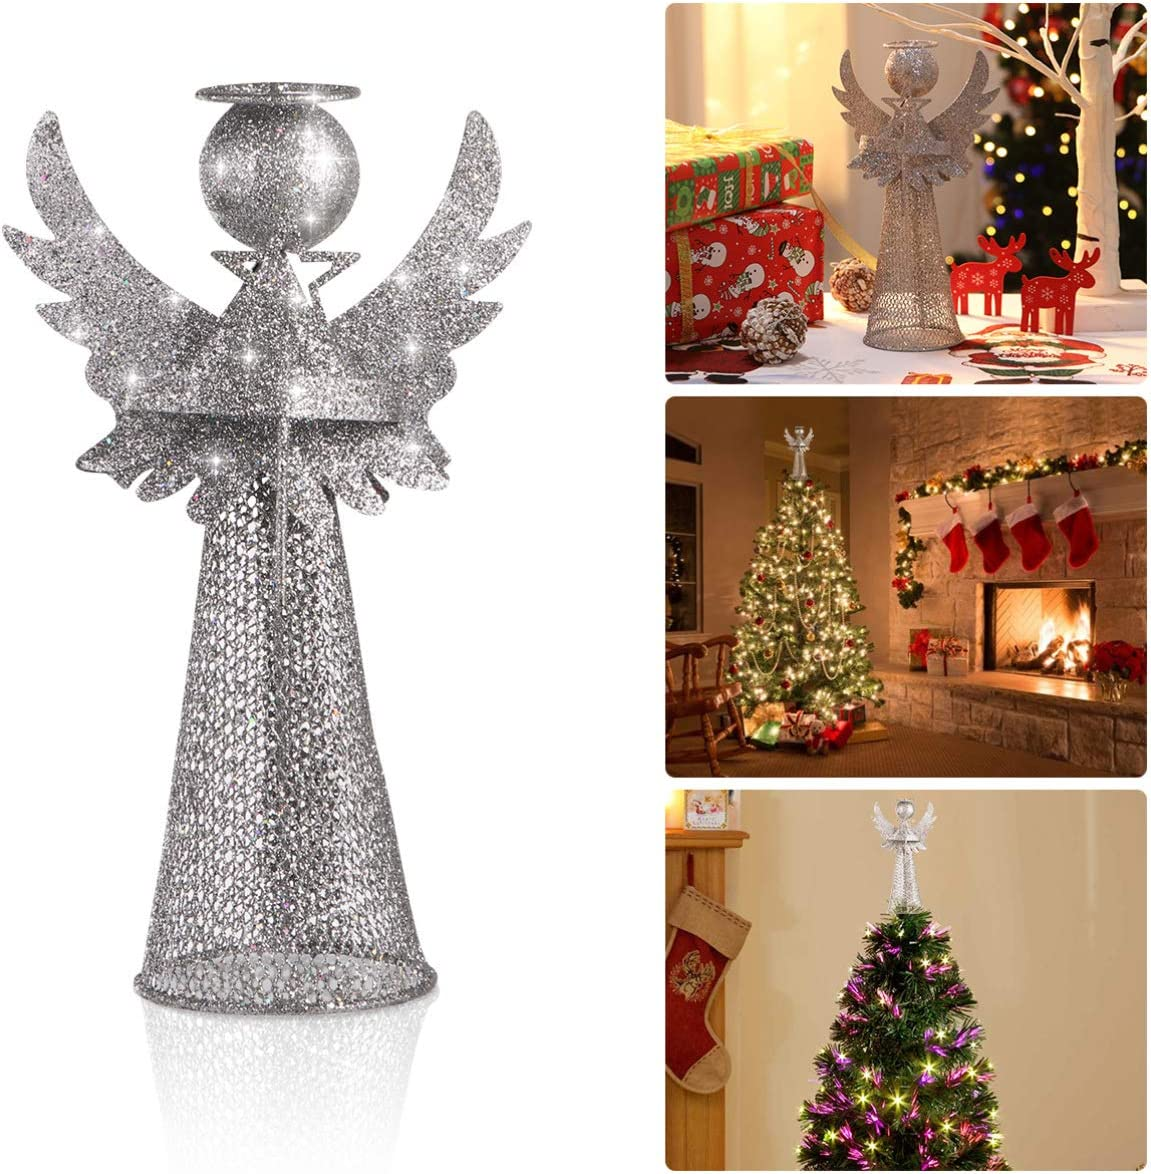 Amosfun Xmas Tree Topper 3D Angel Figure Treetop Silver Glitter Metal Christmas Tree Decor Christmas Desktop Ornament